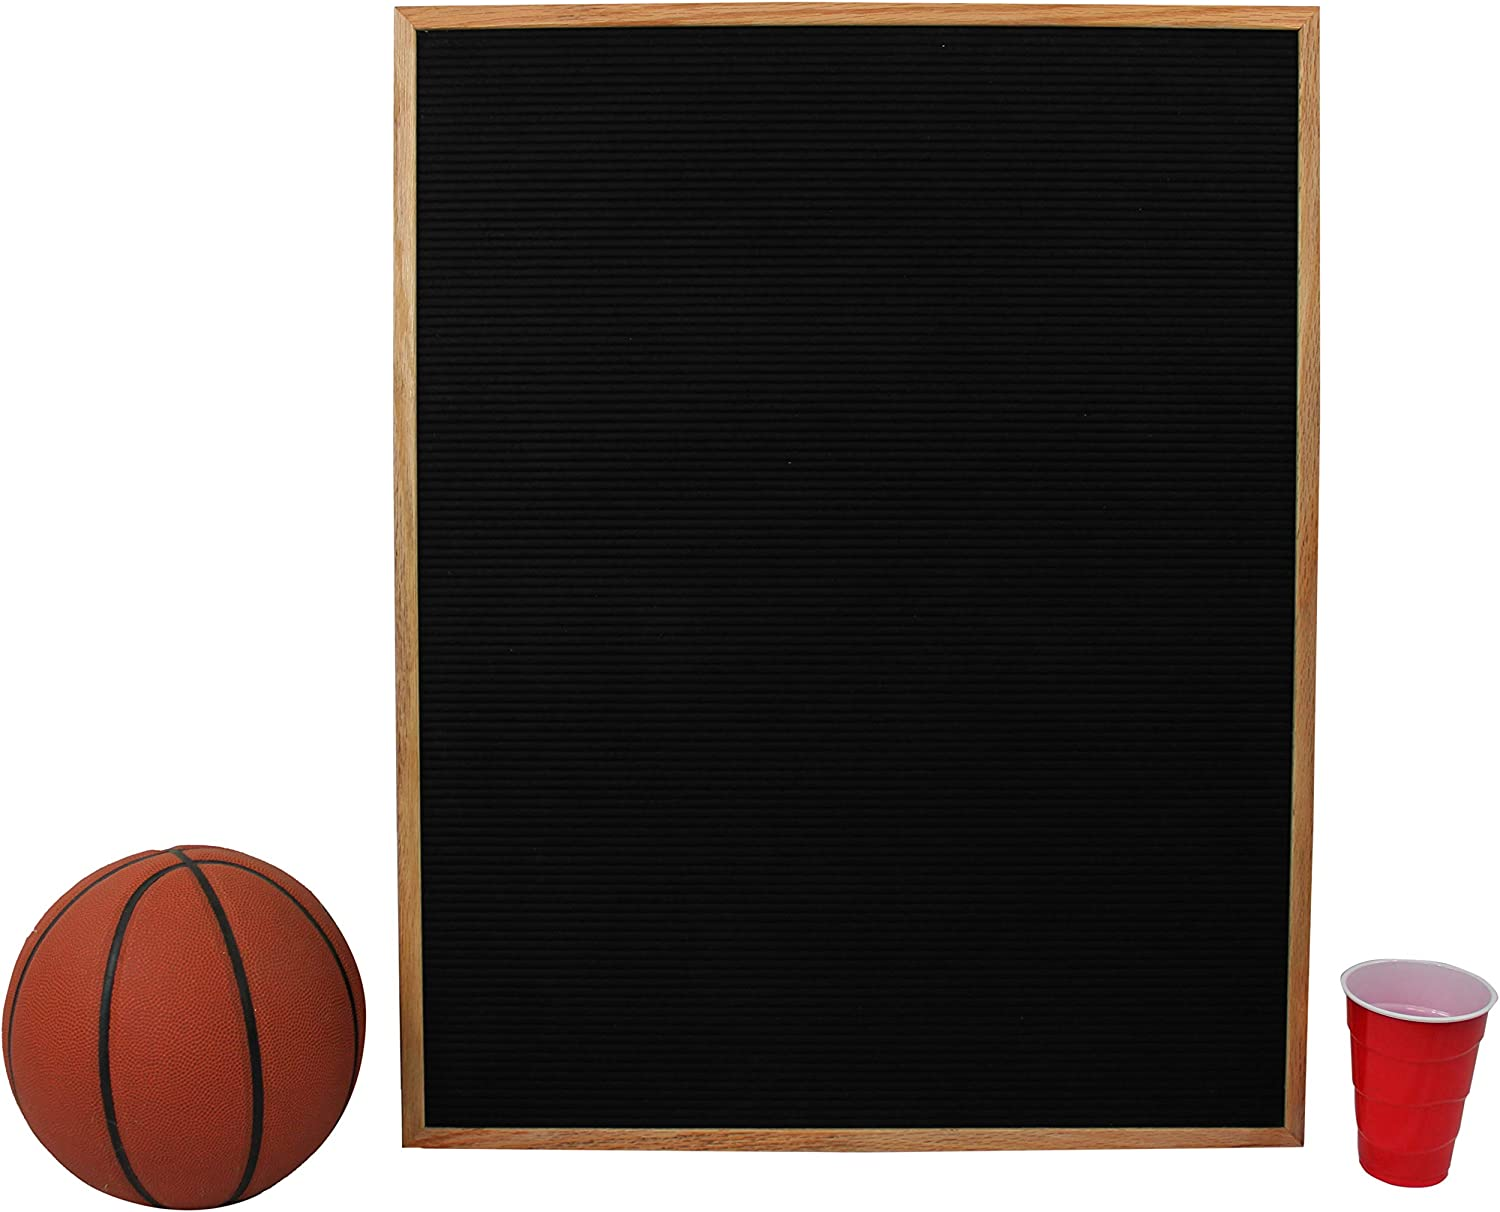 Letter Box and 450 Characters 24 x 30 Black Letter Clippers Extra Large Changeable Letter Board//Orientation Board Black Felt with Solid Oak Frame Wall Mount Canvas Bag